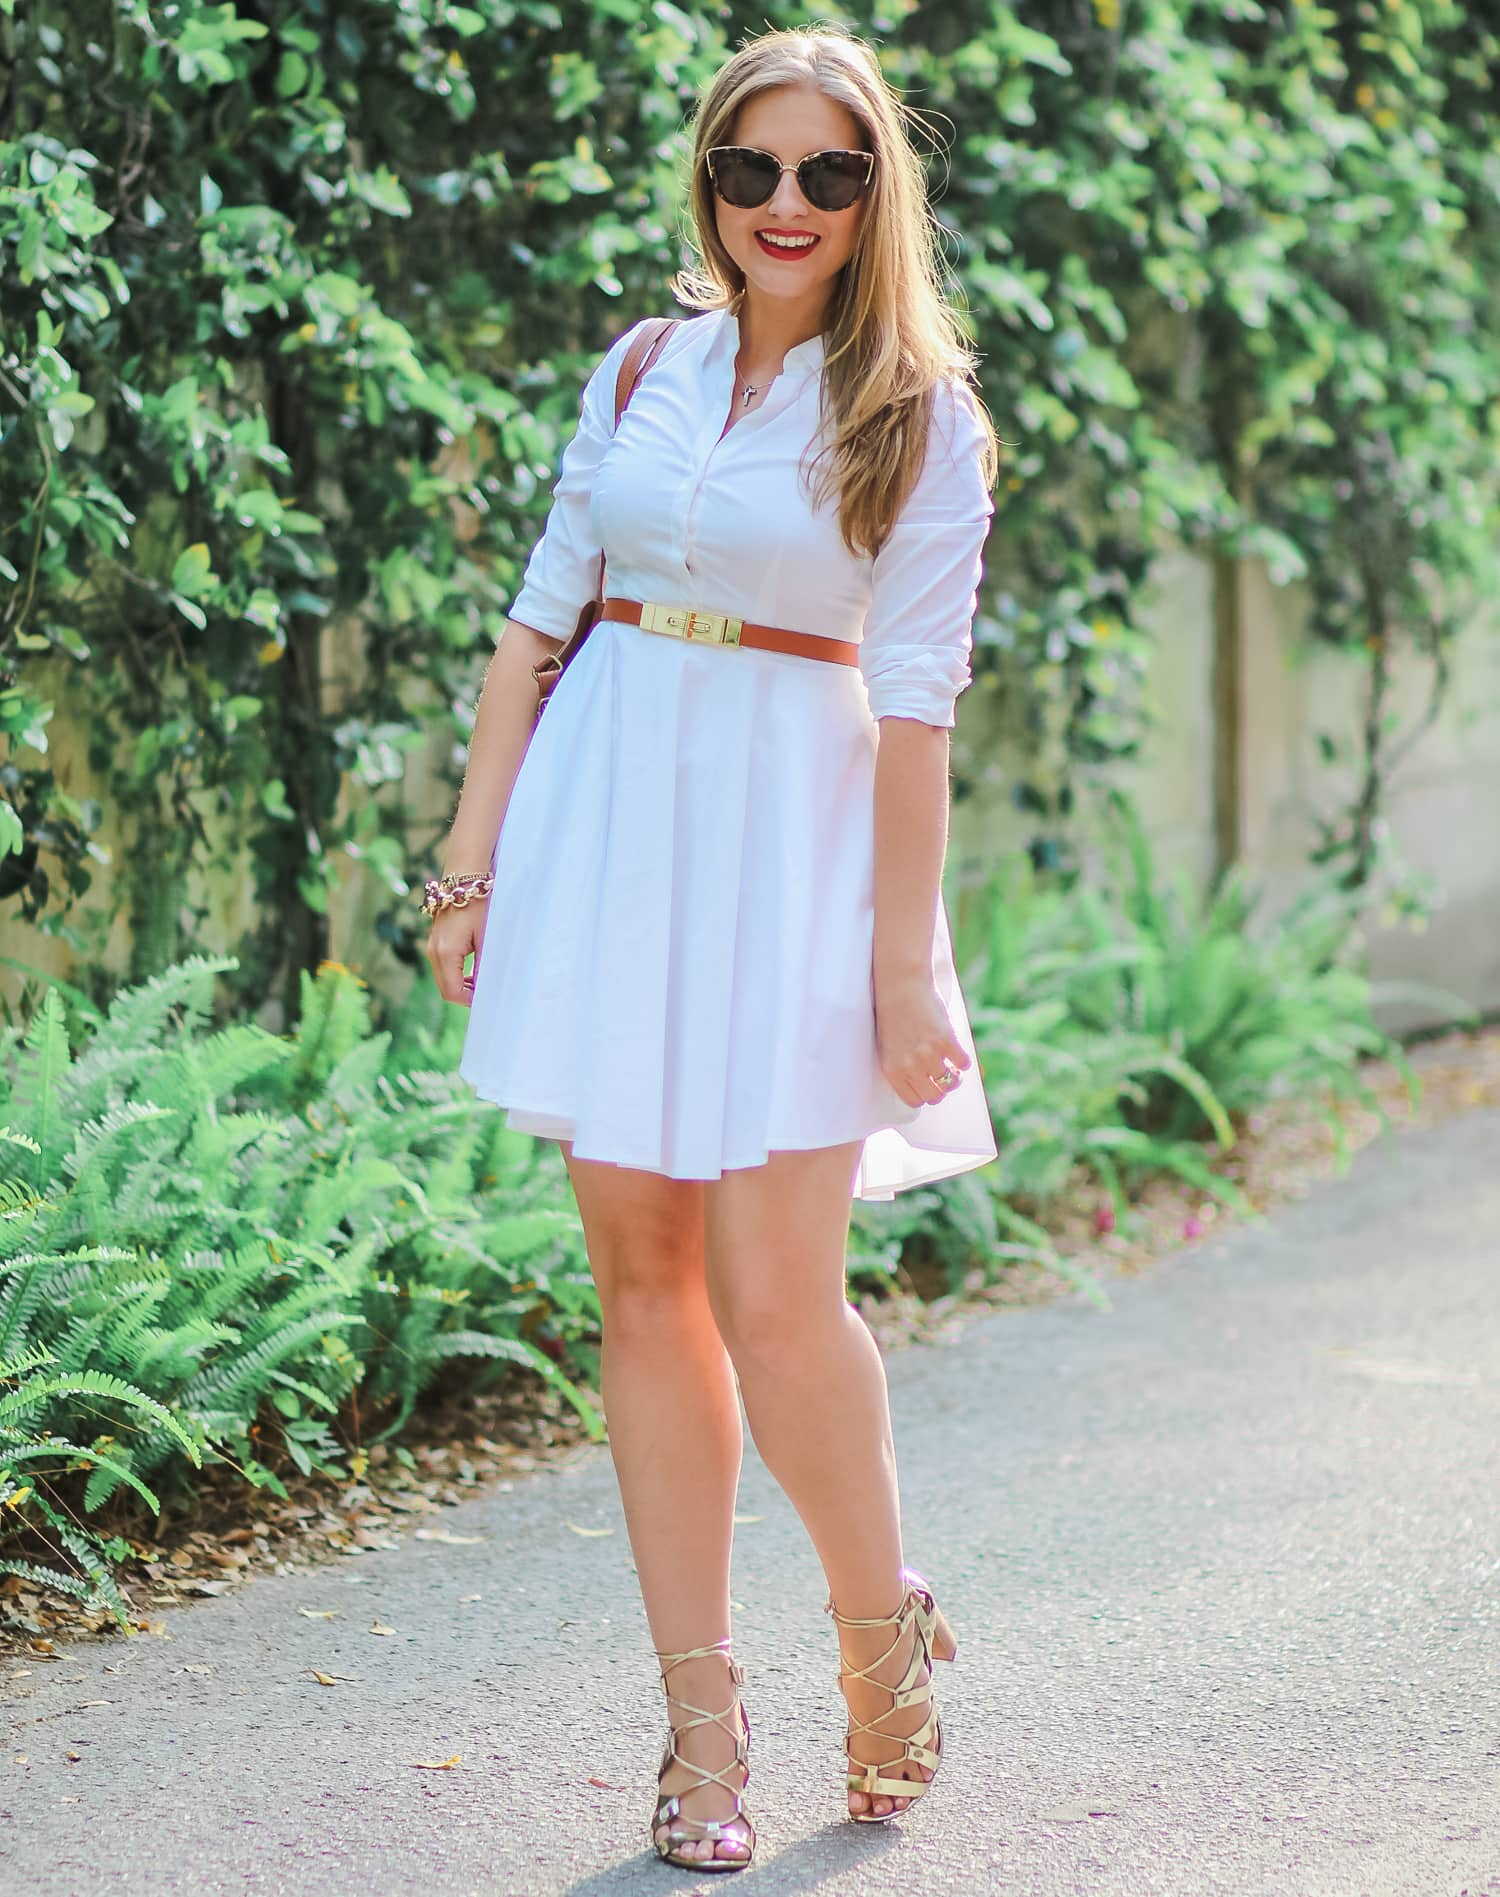 Classic white shirt dress from Express, gold lace-up sandals from Banana Republic, Quay My Girl tortoiseshell cat eye sunglasses, and cognac tote bag from Payless Shoesource styled by Florida fashion blogger Ashley Brooke Nicholas